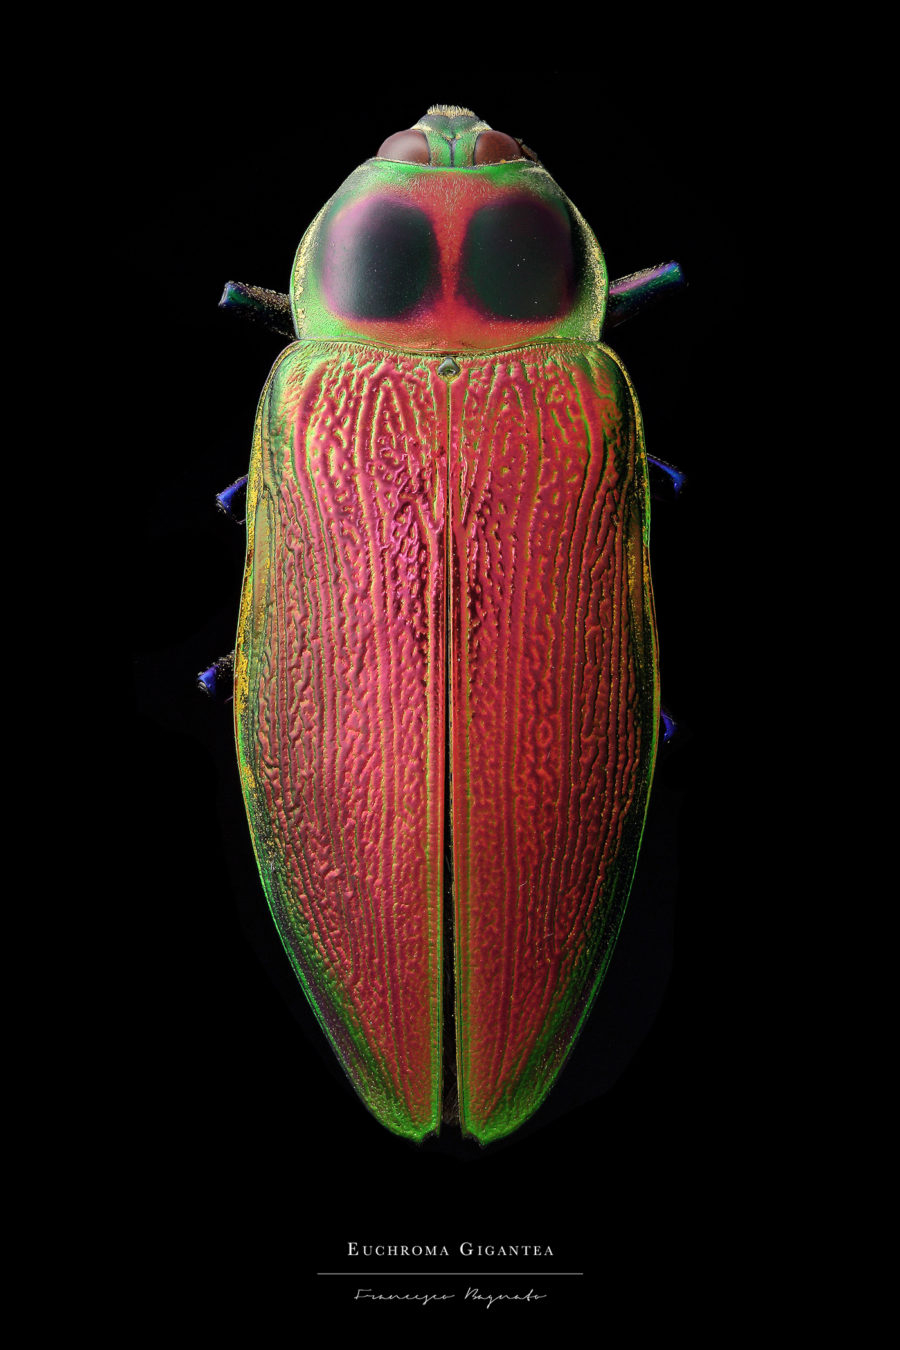 Stunning Pictures of Colorful Insects 4 Beautiful Pictures of Colorful Insects